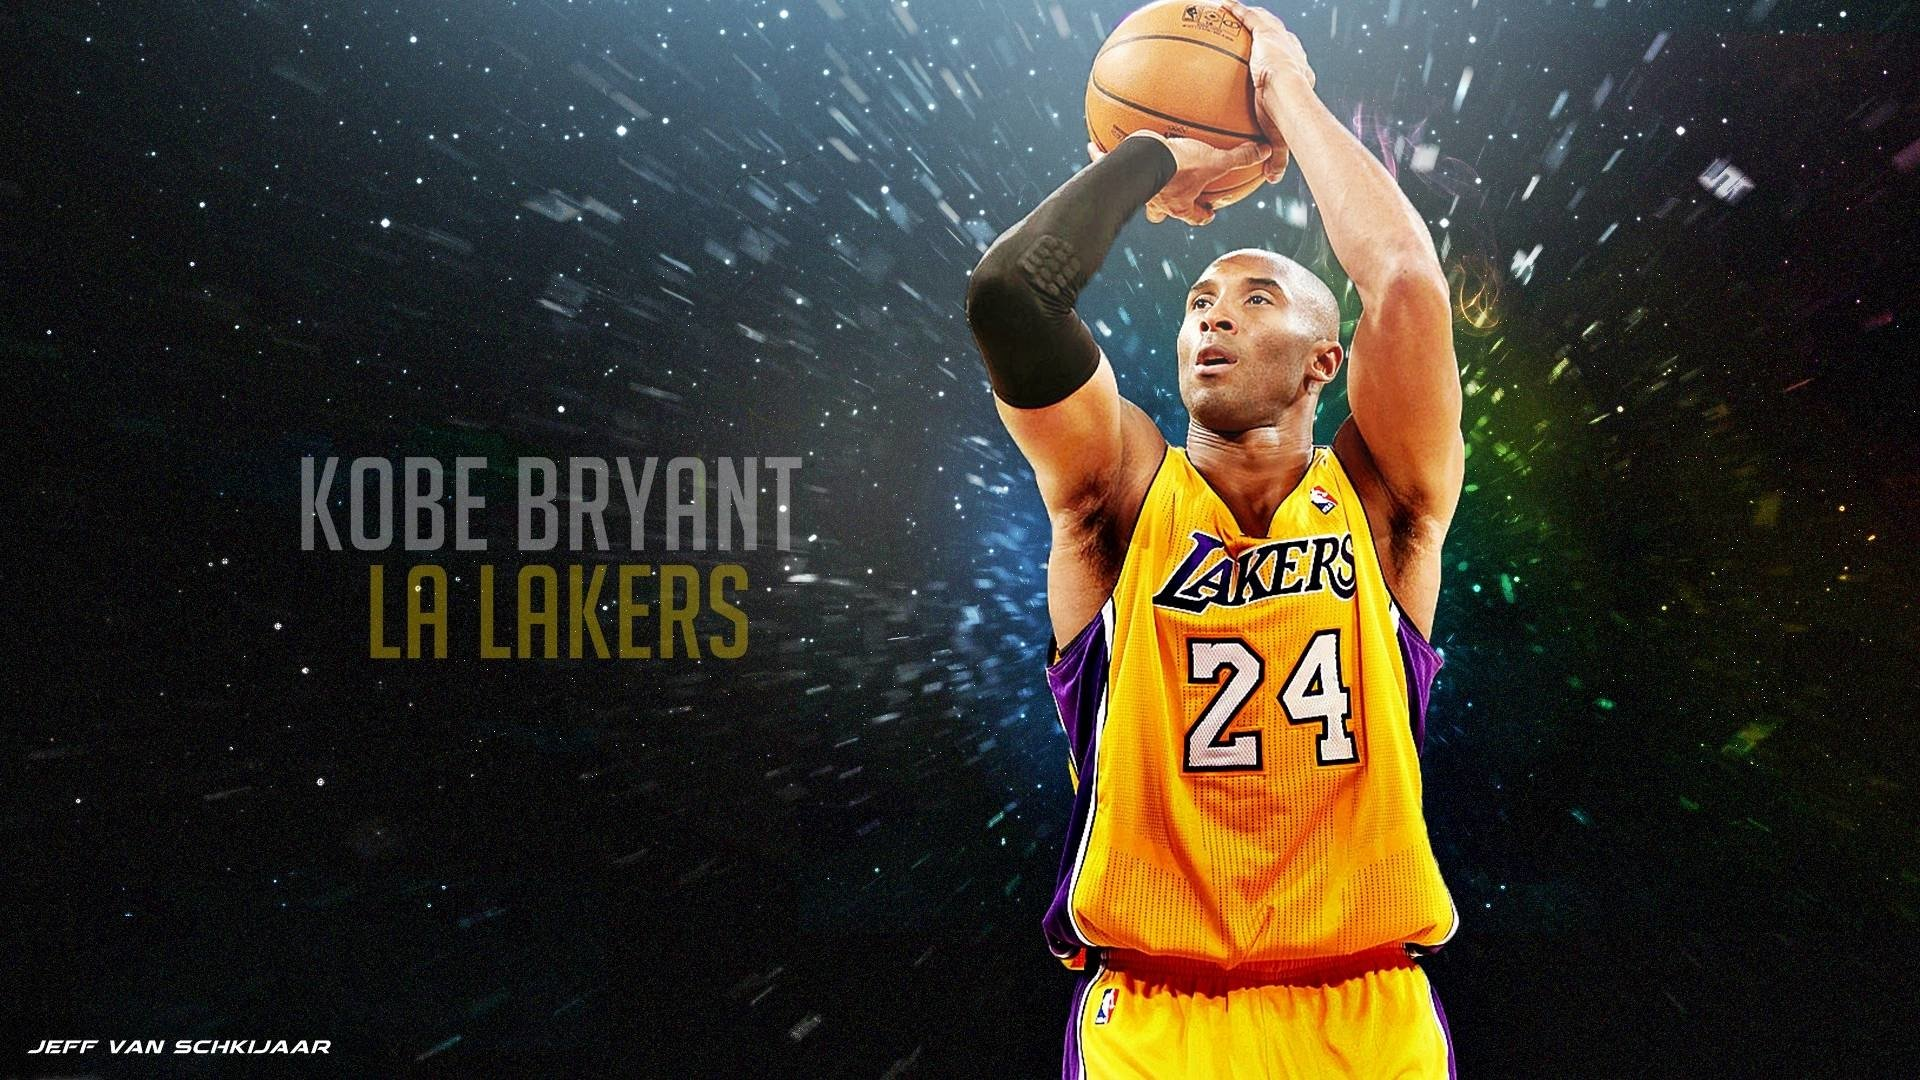 Kobe bryant full hd wallpaper and background image 1920x1080 id sports kobe bryant wallpaper voltagebd Image collections